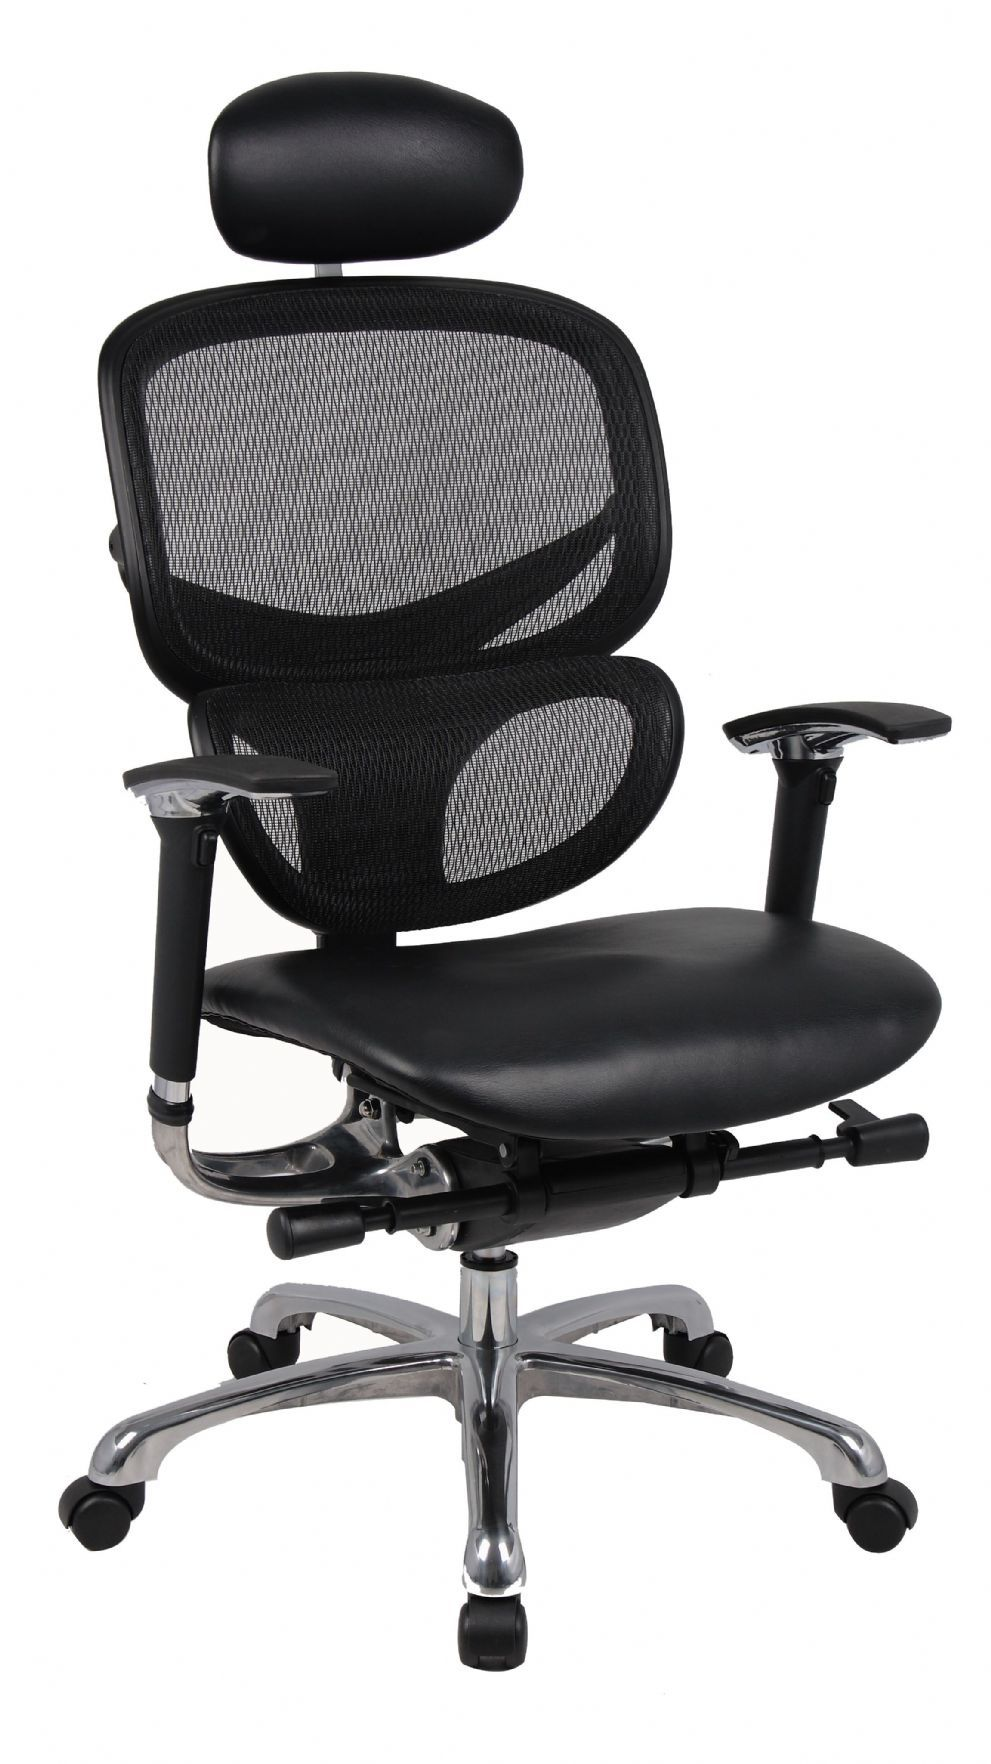 wave ergonomic mesh office chair with leather seat and leather